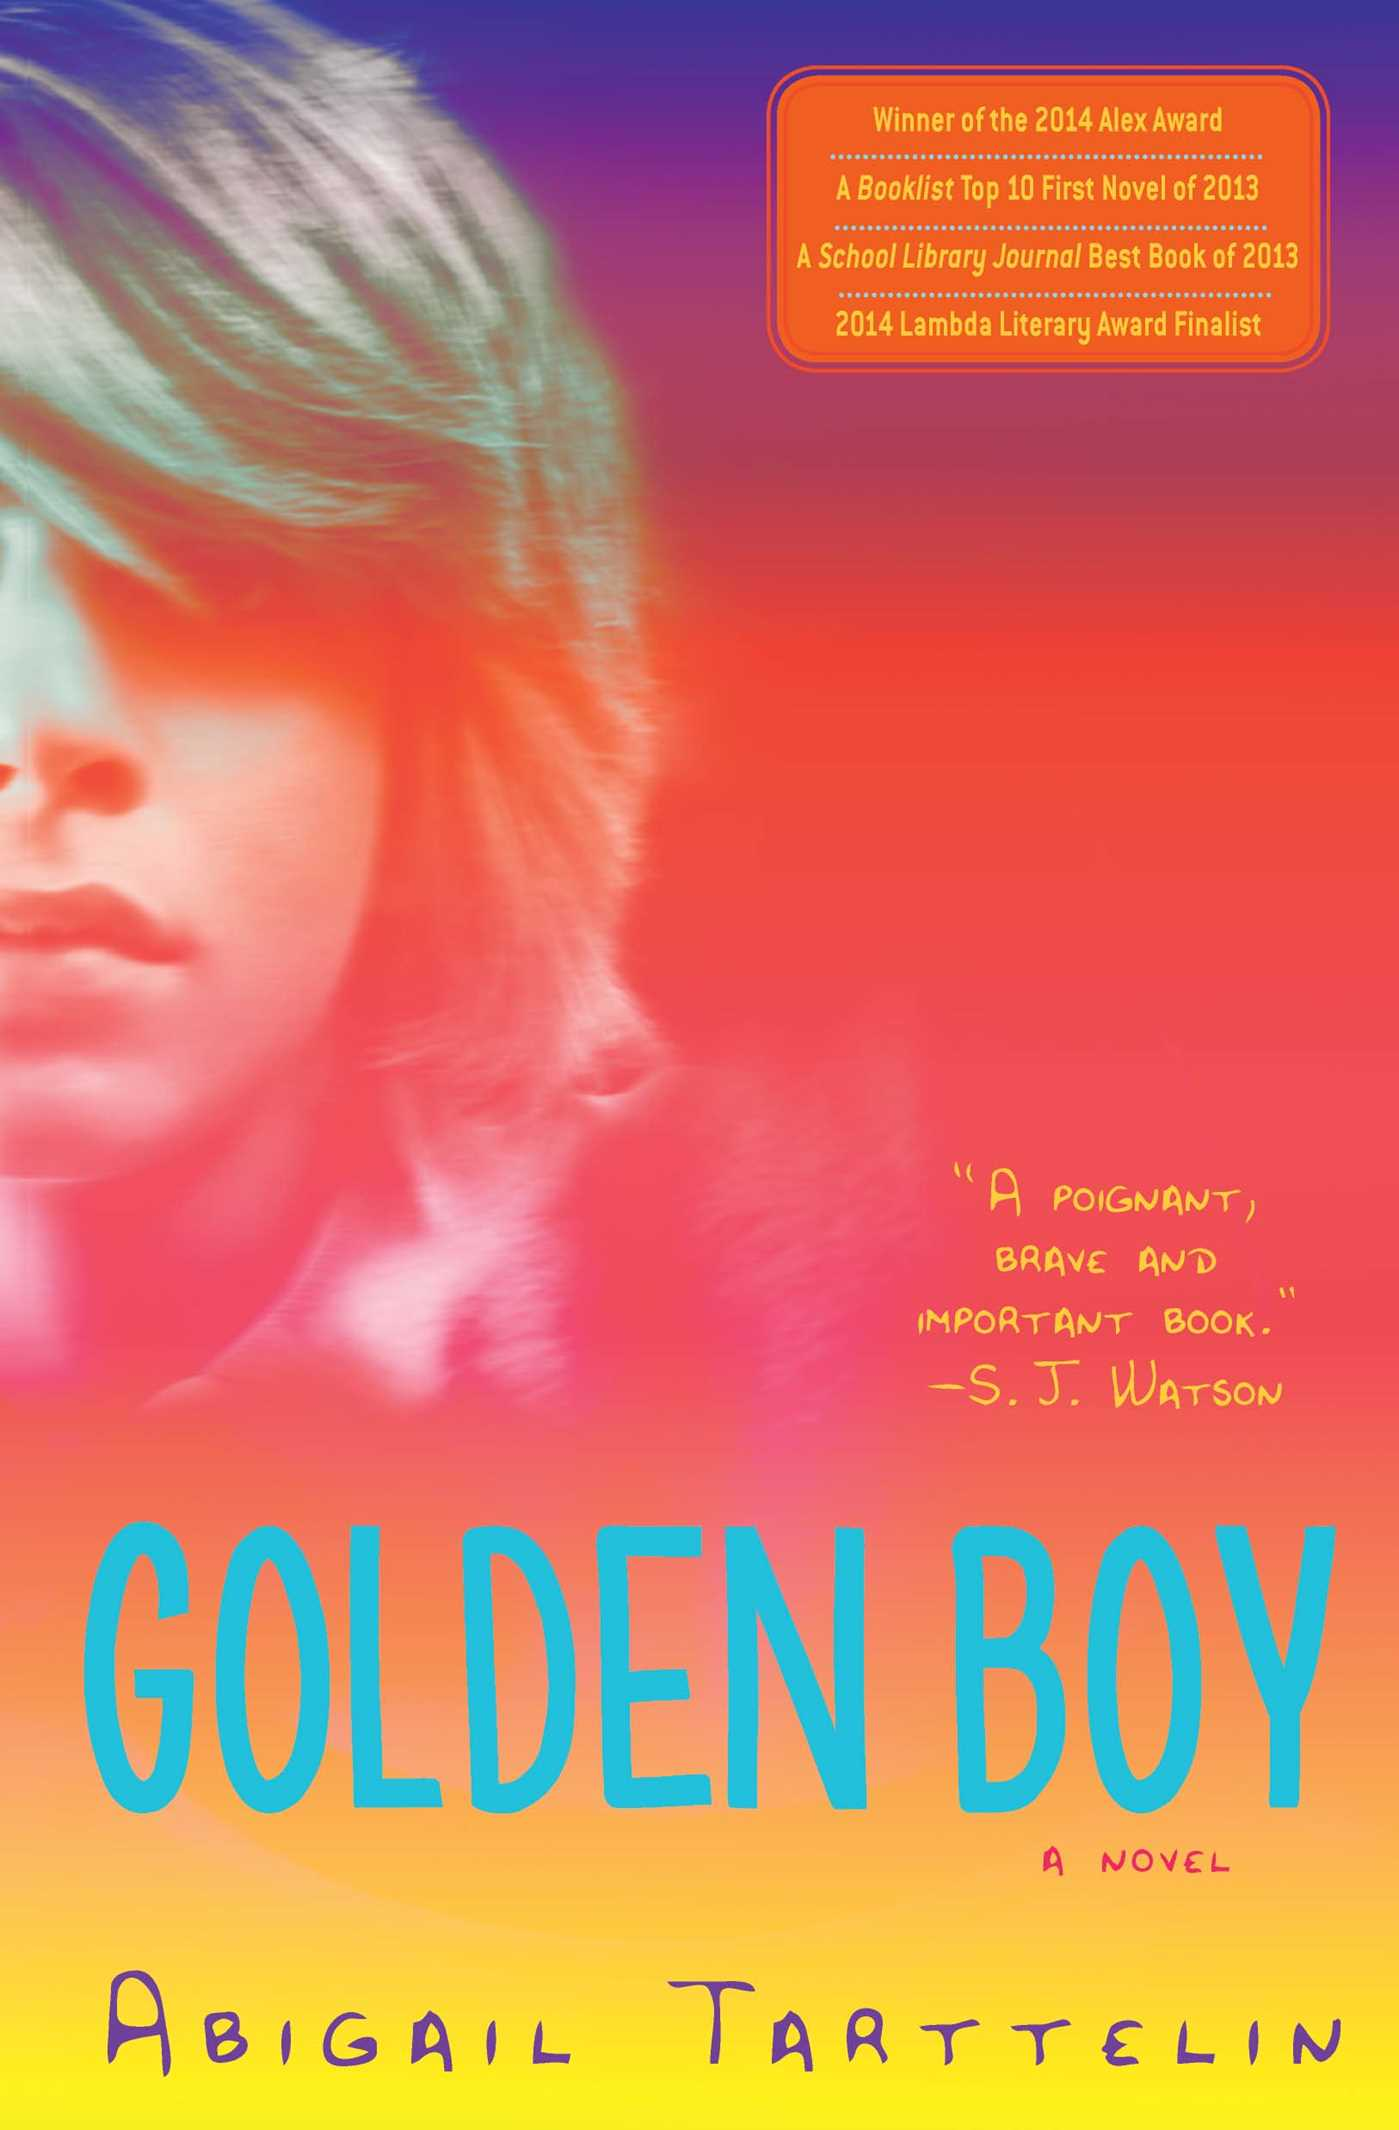 Golden-boy-9781476705835_hr